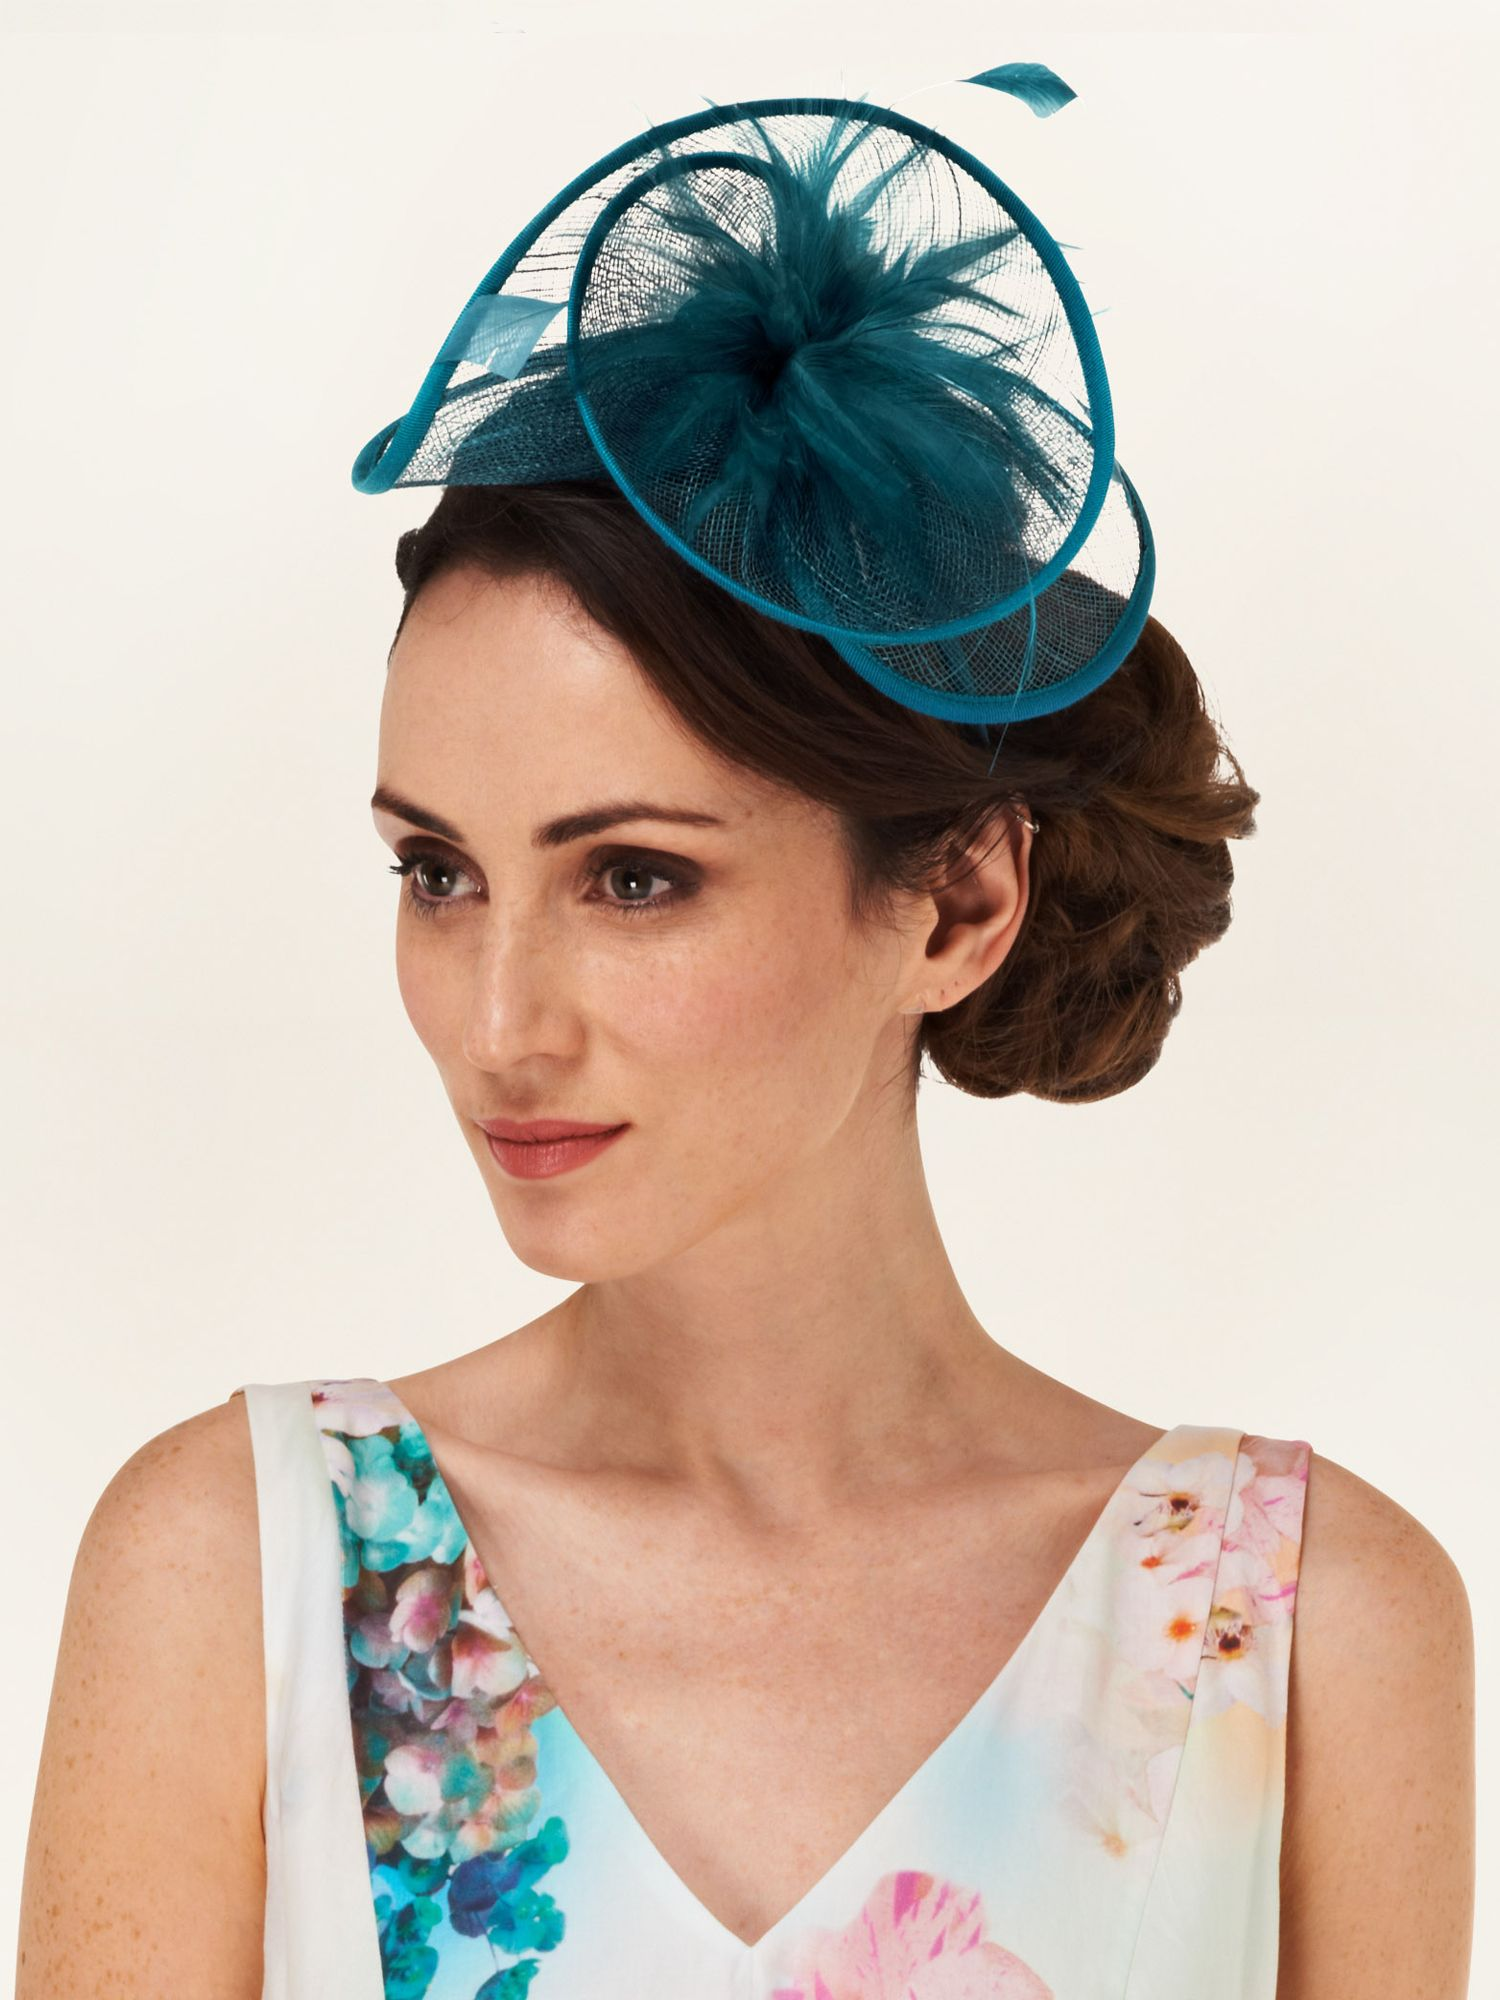 Emma swirl fascinator